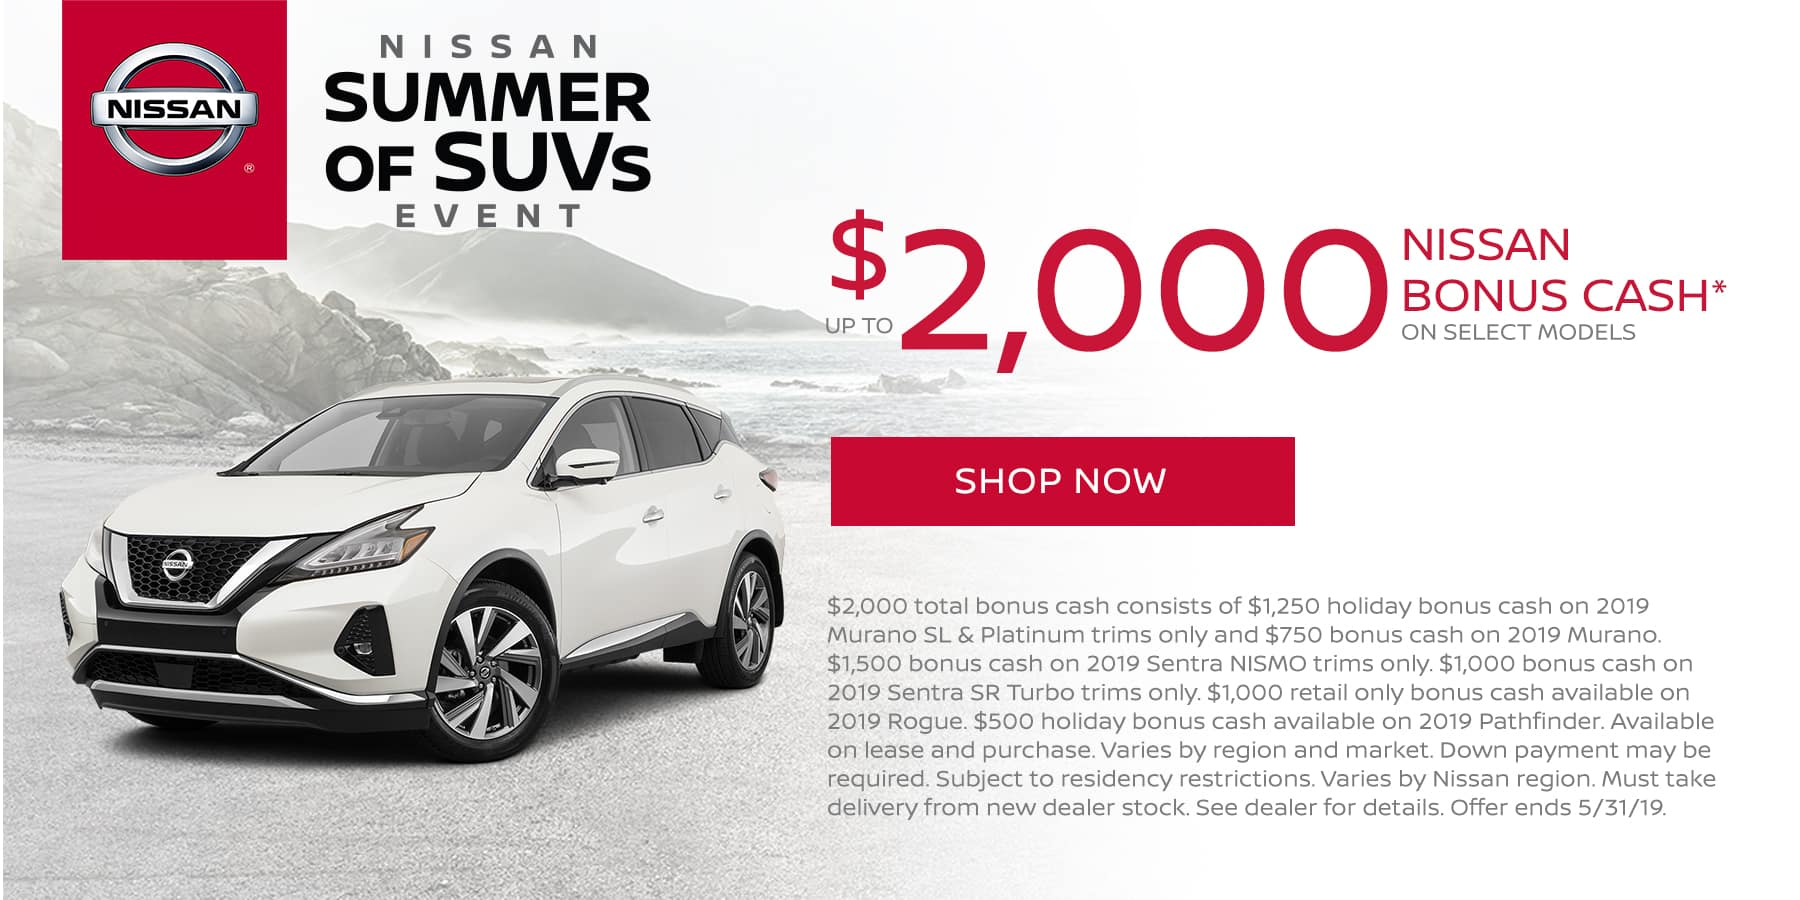 Up to $2,000 Nissan Bonus Cash